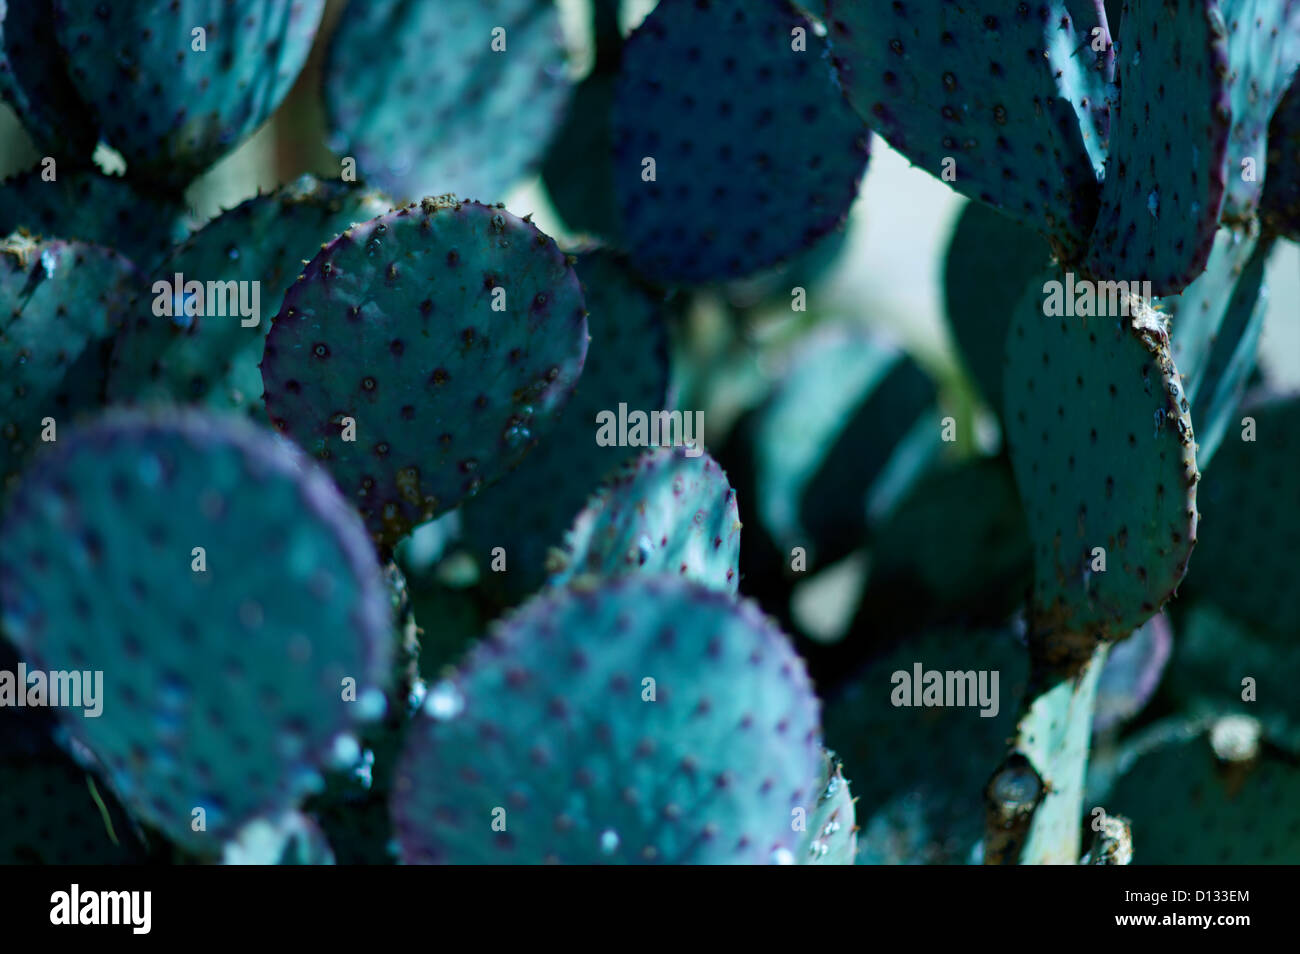 Close-up of spiked cactus - Stock Image